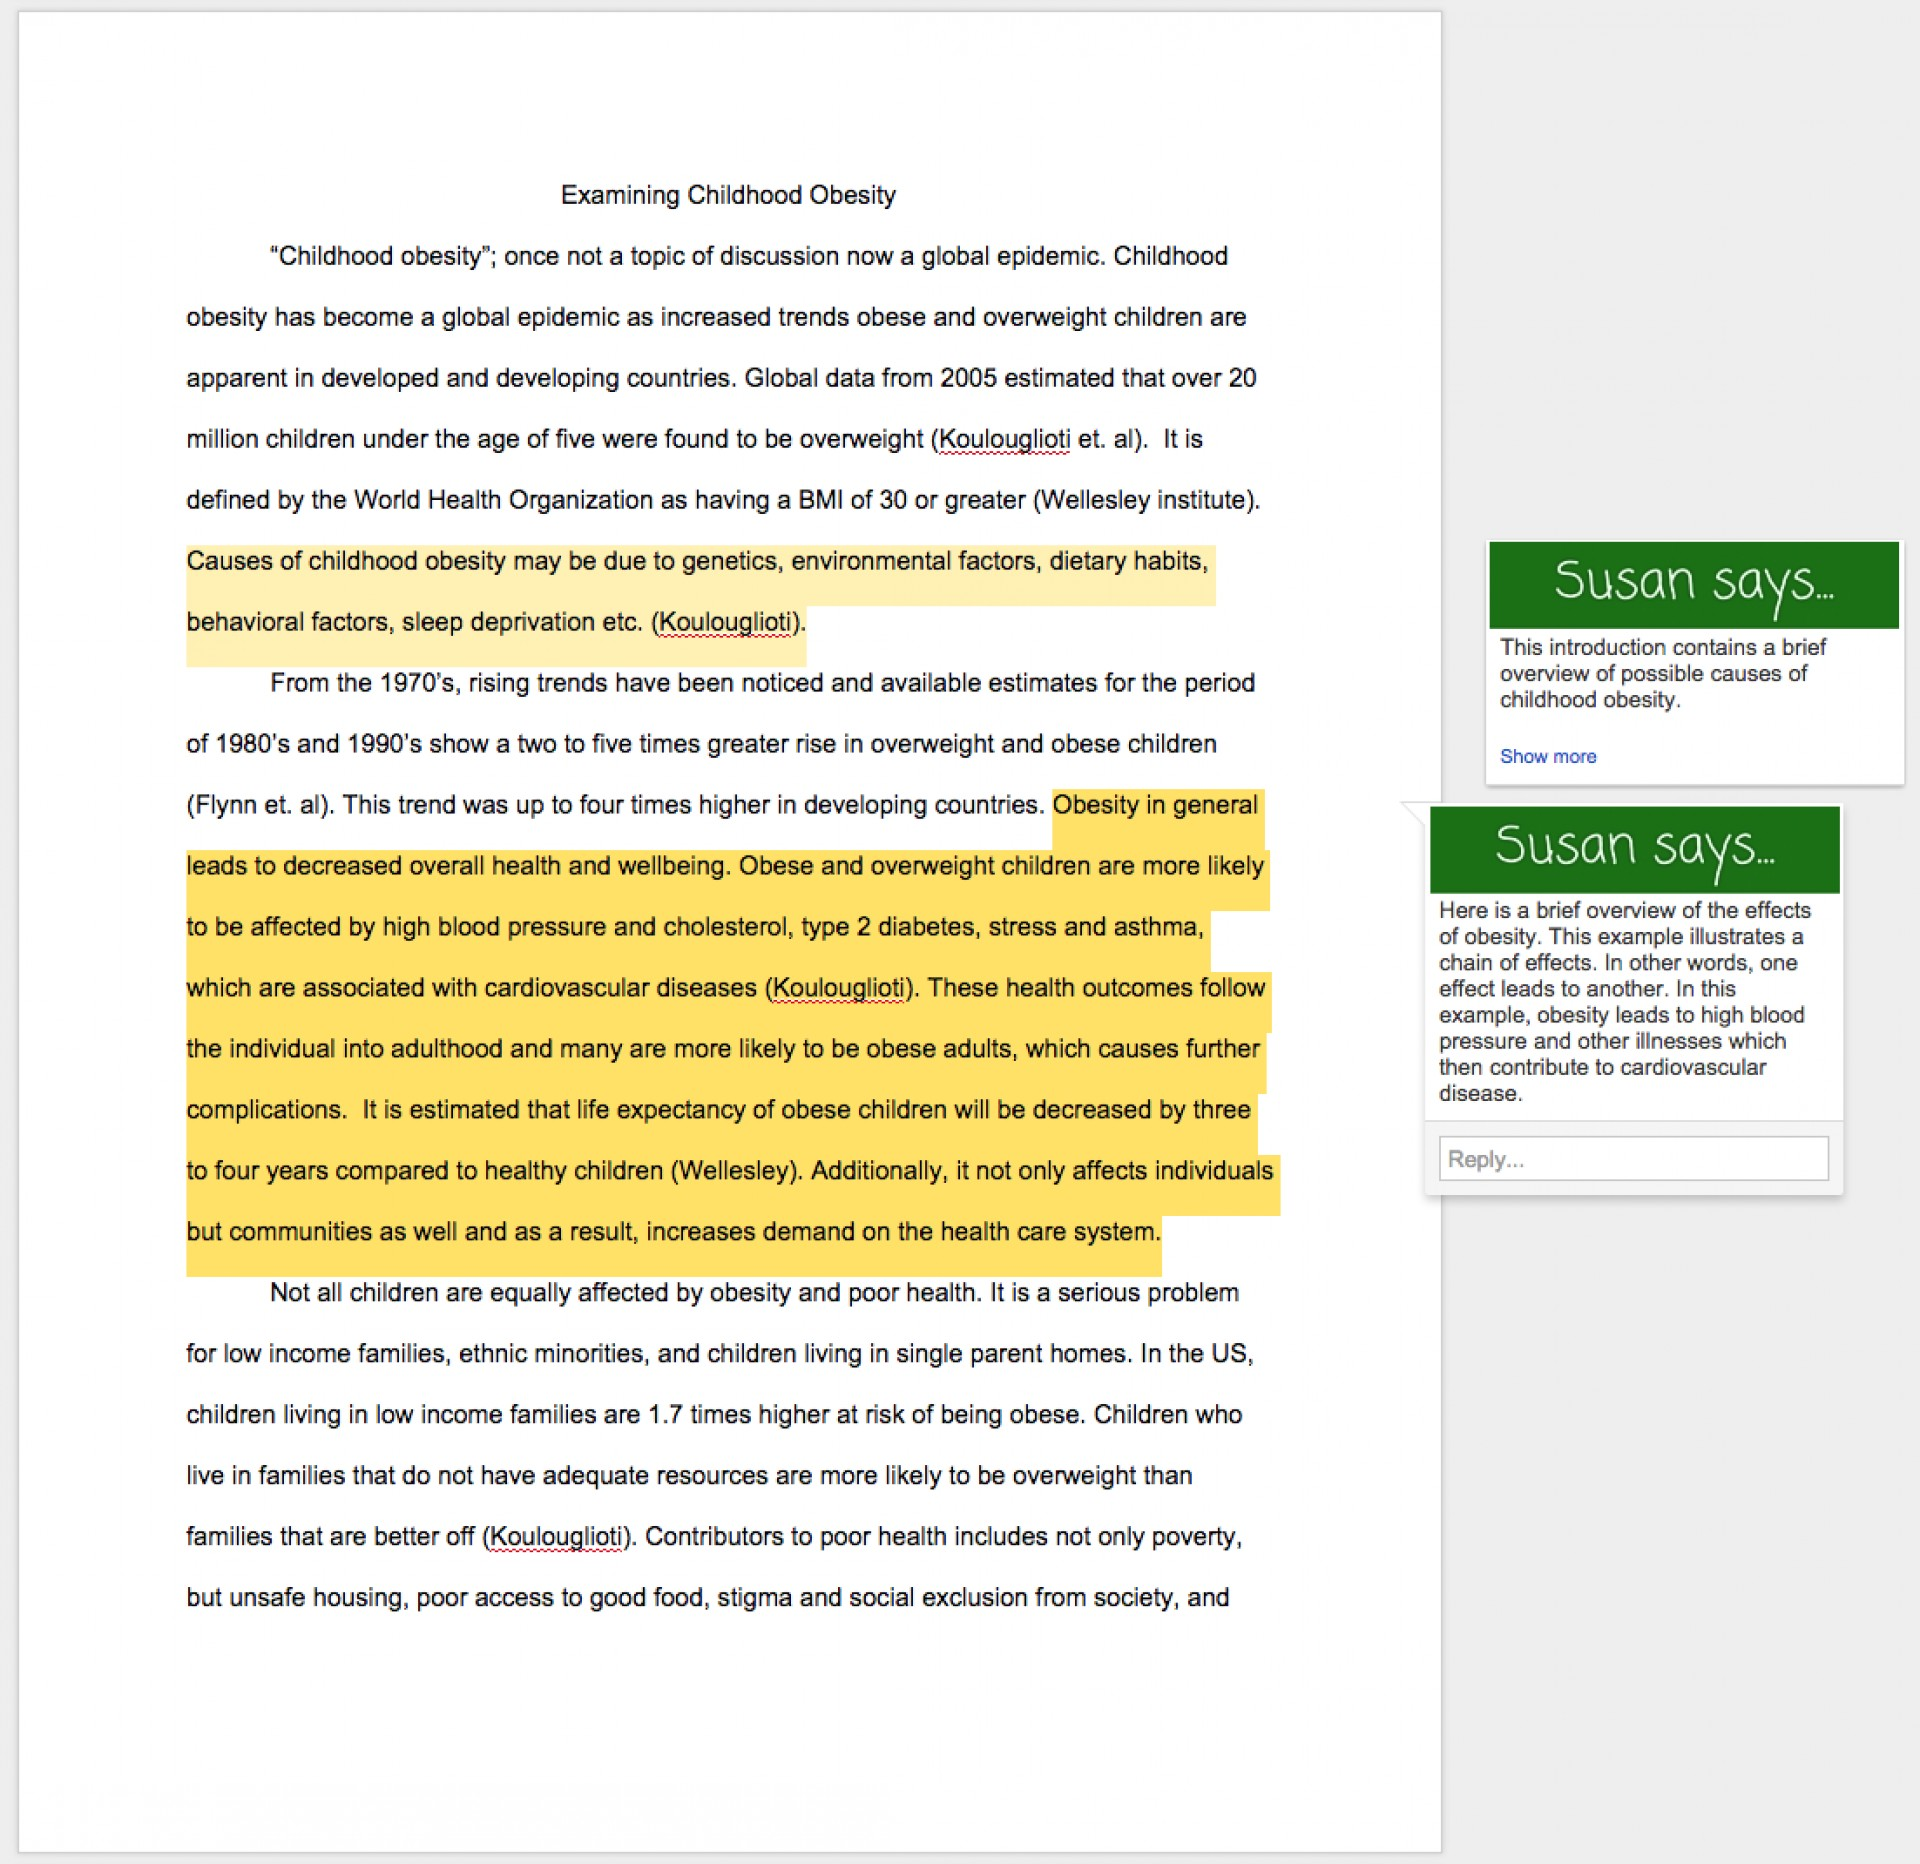 001 Cause And Effect Essays That Will Stir L How To Write Wondrous Essay Introduction Pdf 1920